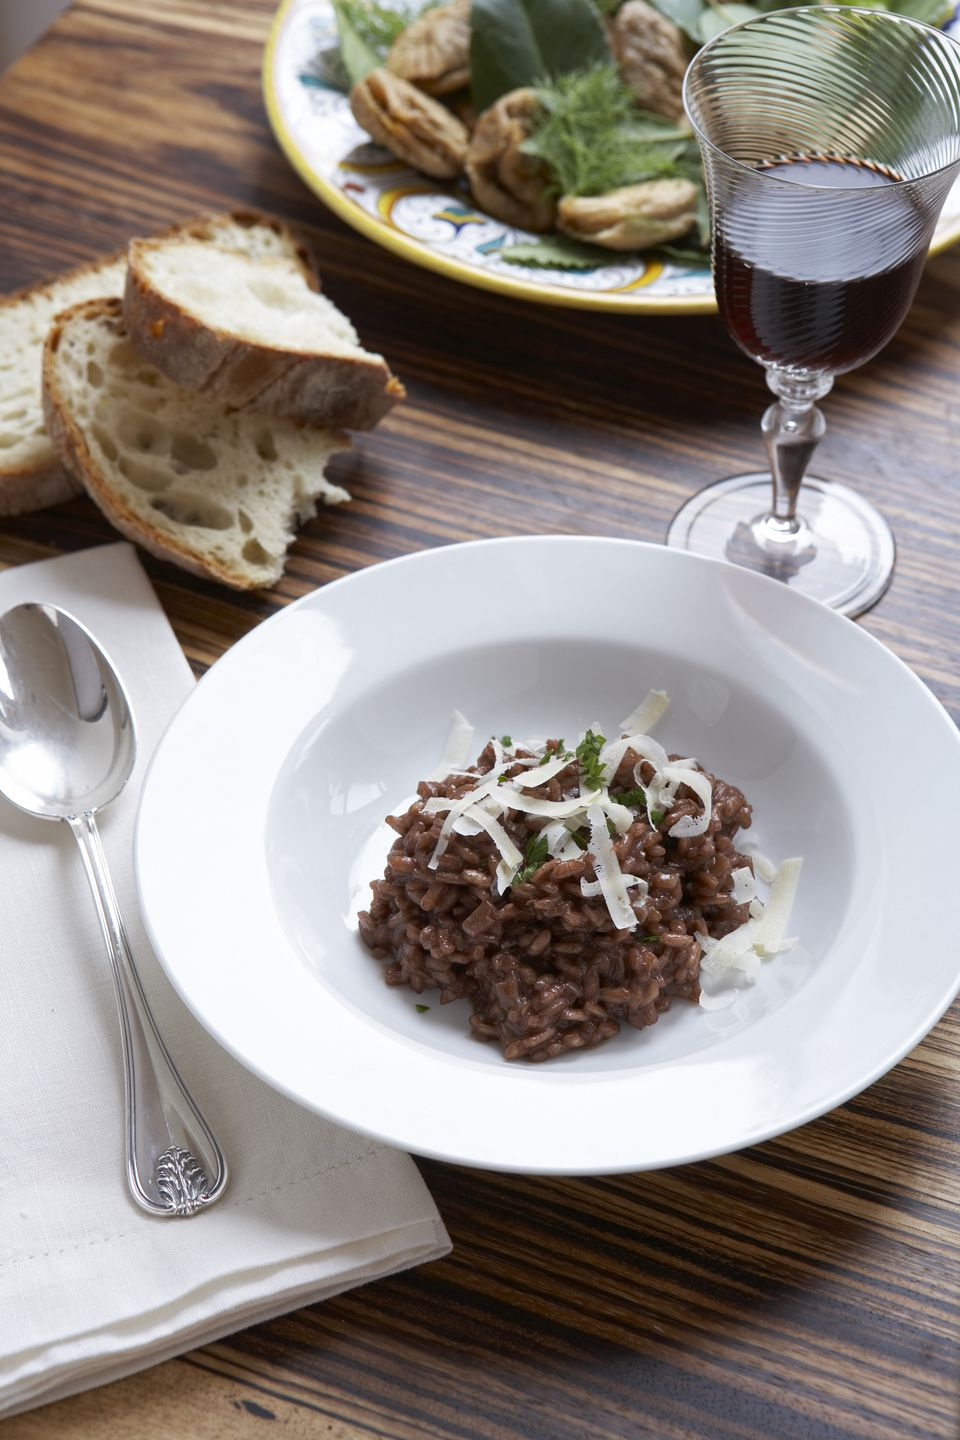 Risotto made with Amarone red wine